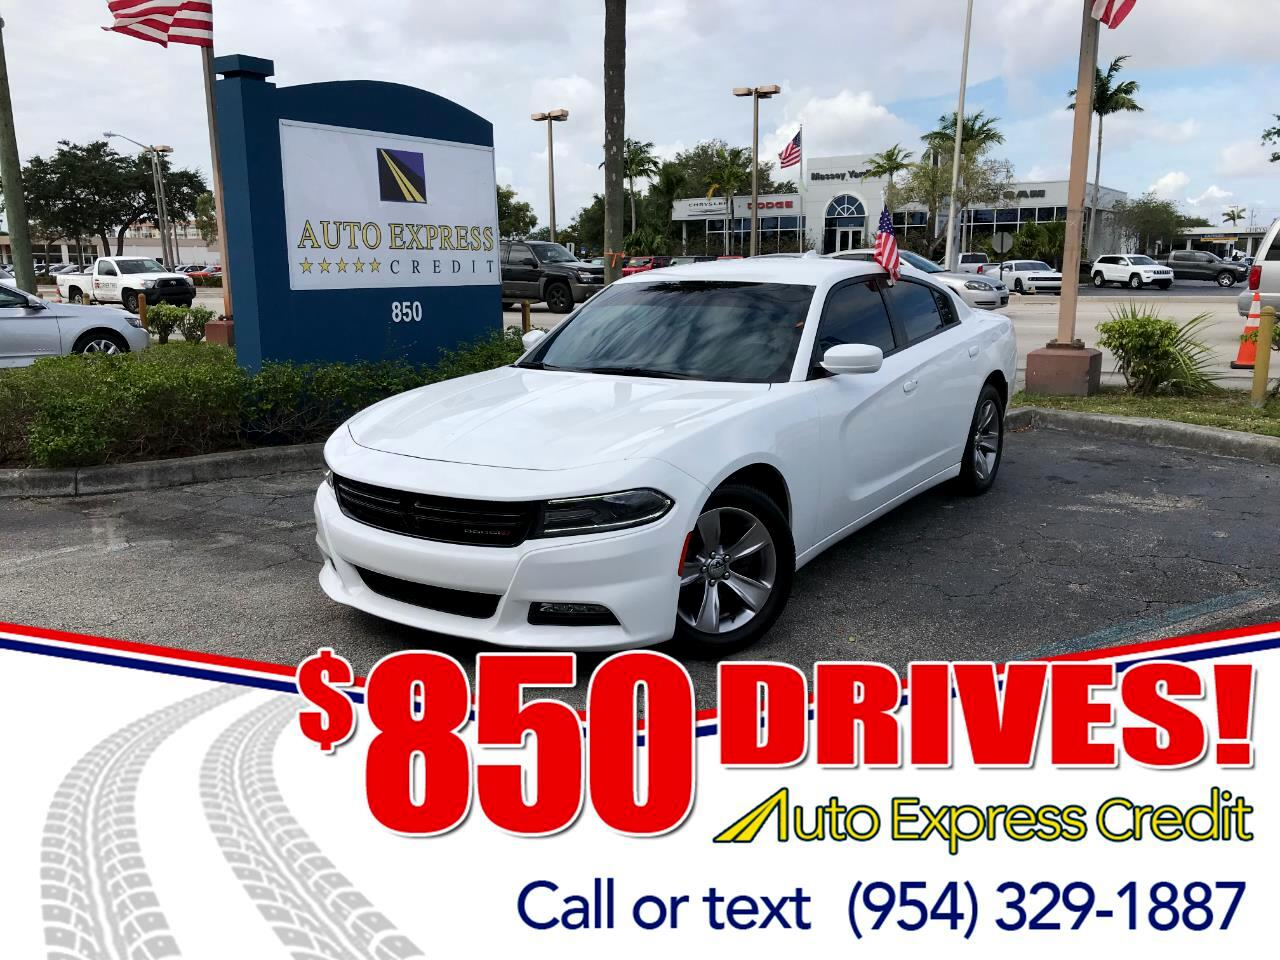 Used 2016 Dodge Charger For Sale In Plantation FL 33317 Auto